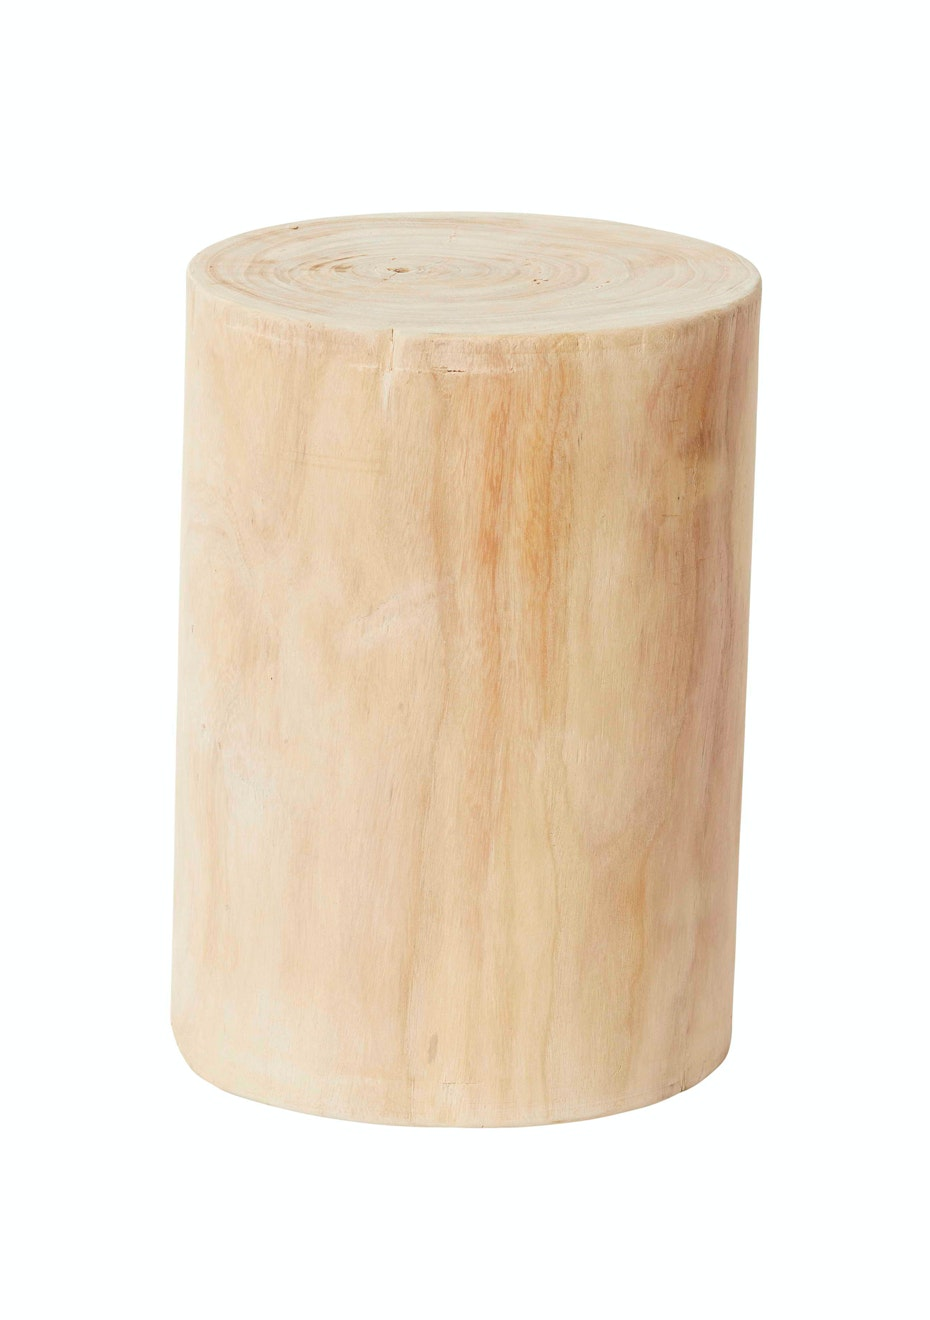 Picture of: Amalfi Hutch Side Table Stool Natural Paulownia Wood Boho Rattan Home Back By Demand Onceit